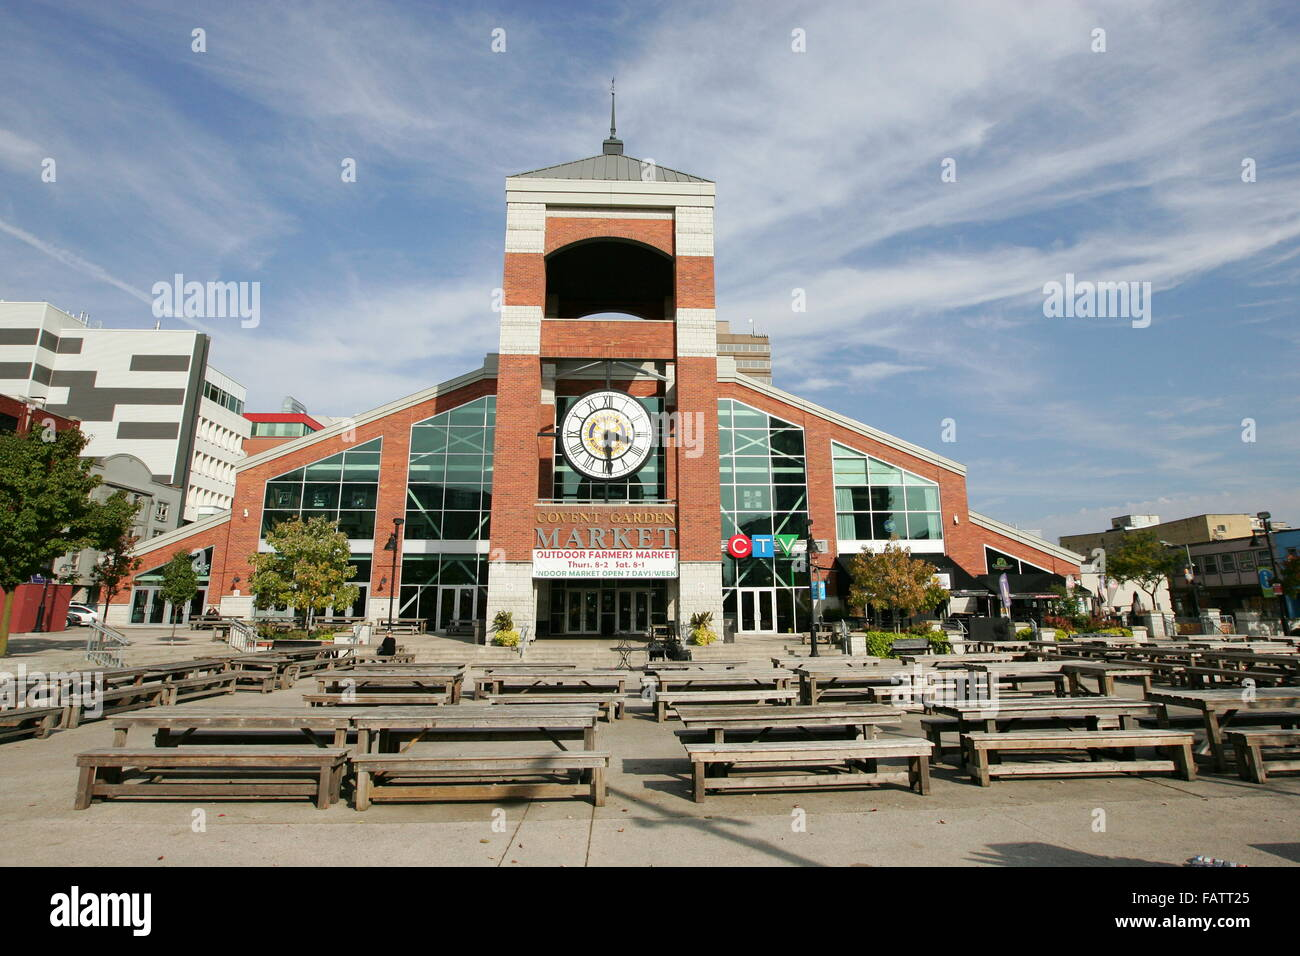 Covent garden market london ontario stock photo royalty for 8 cuisine london ontario